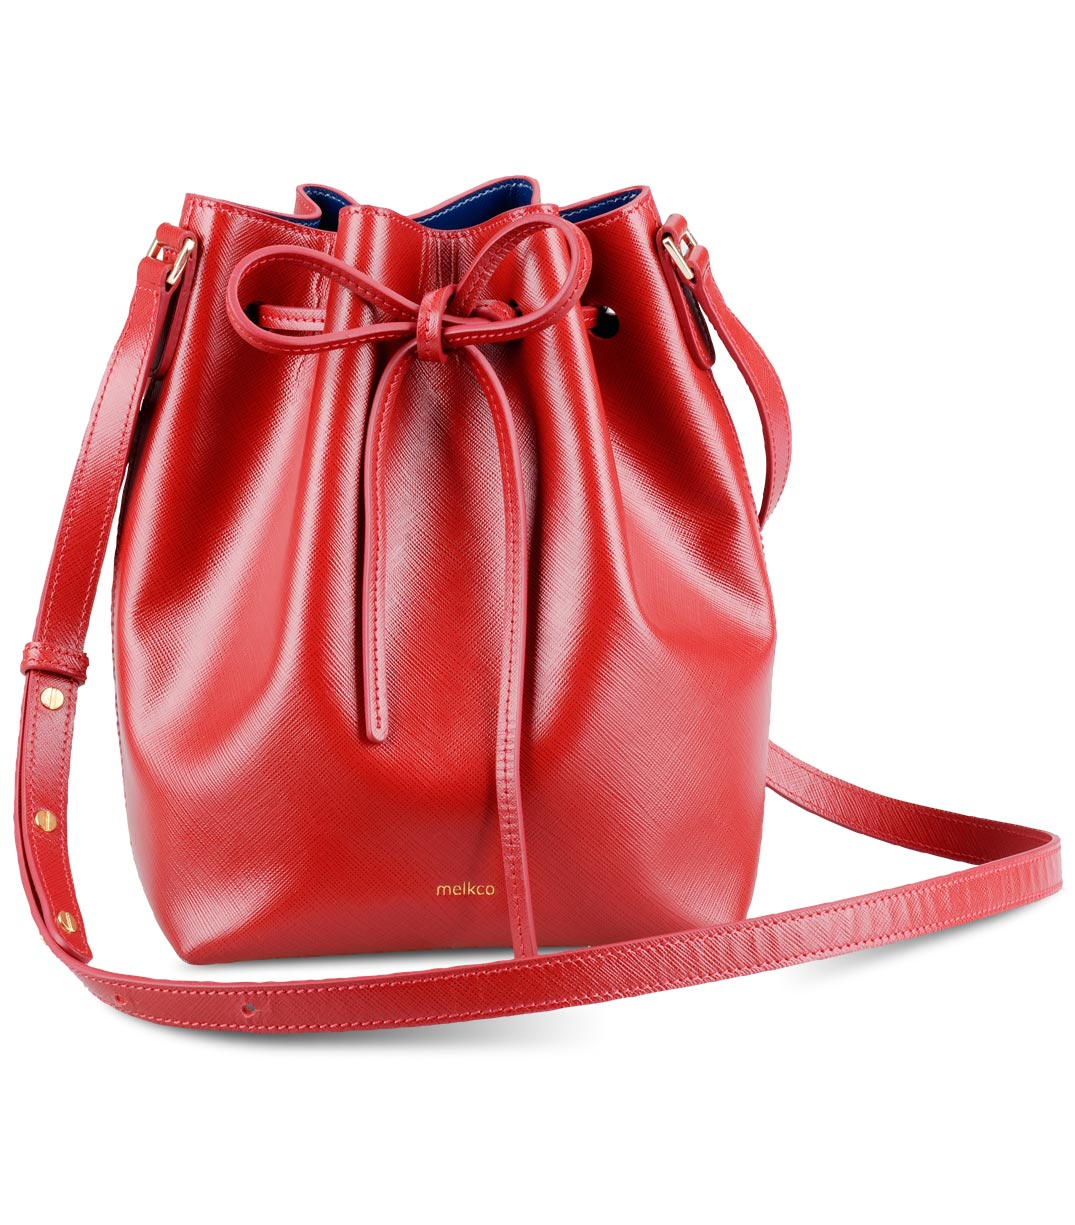 Melkco Fashion Memi Purden Bucket Bag in Cross pattern ...